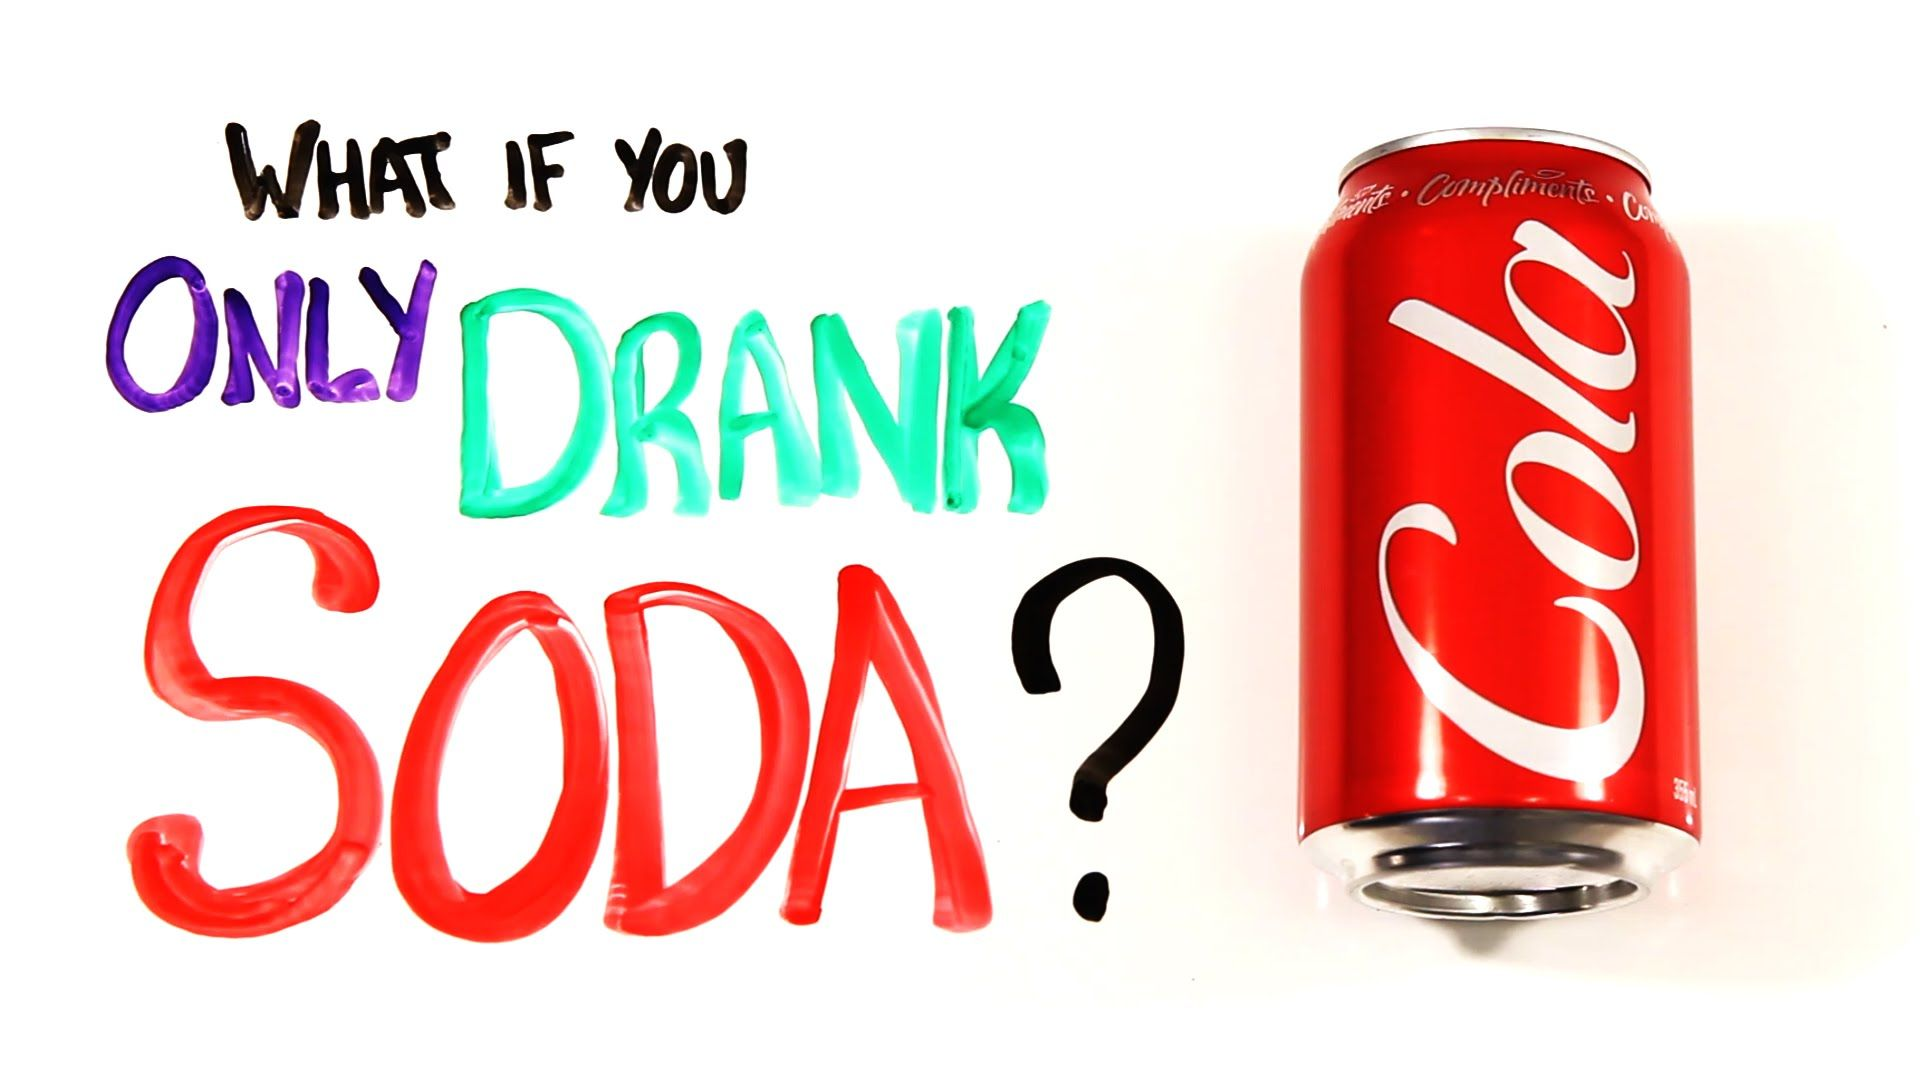 WHAT WOULD HAPPEN IF YOU JUST DRANK SODA? Drinks, Human